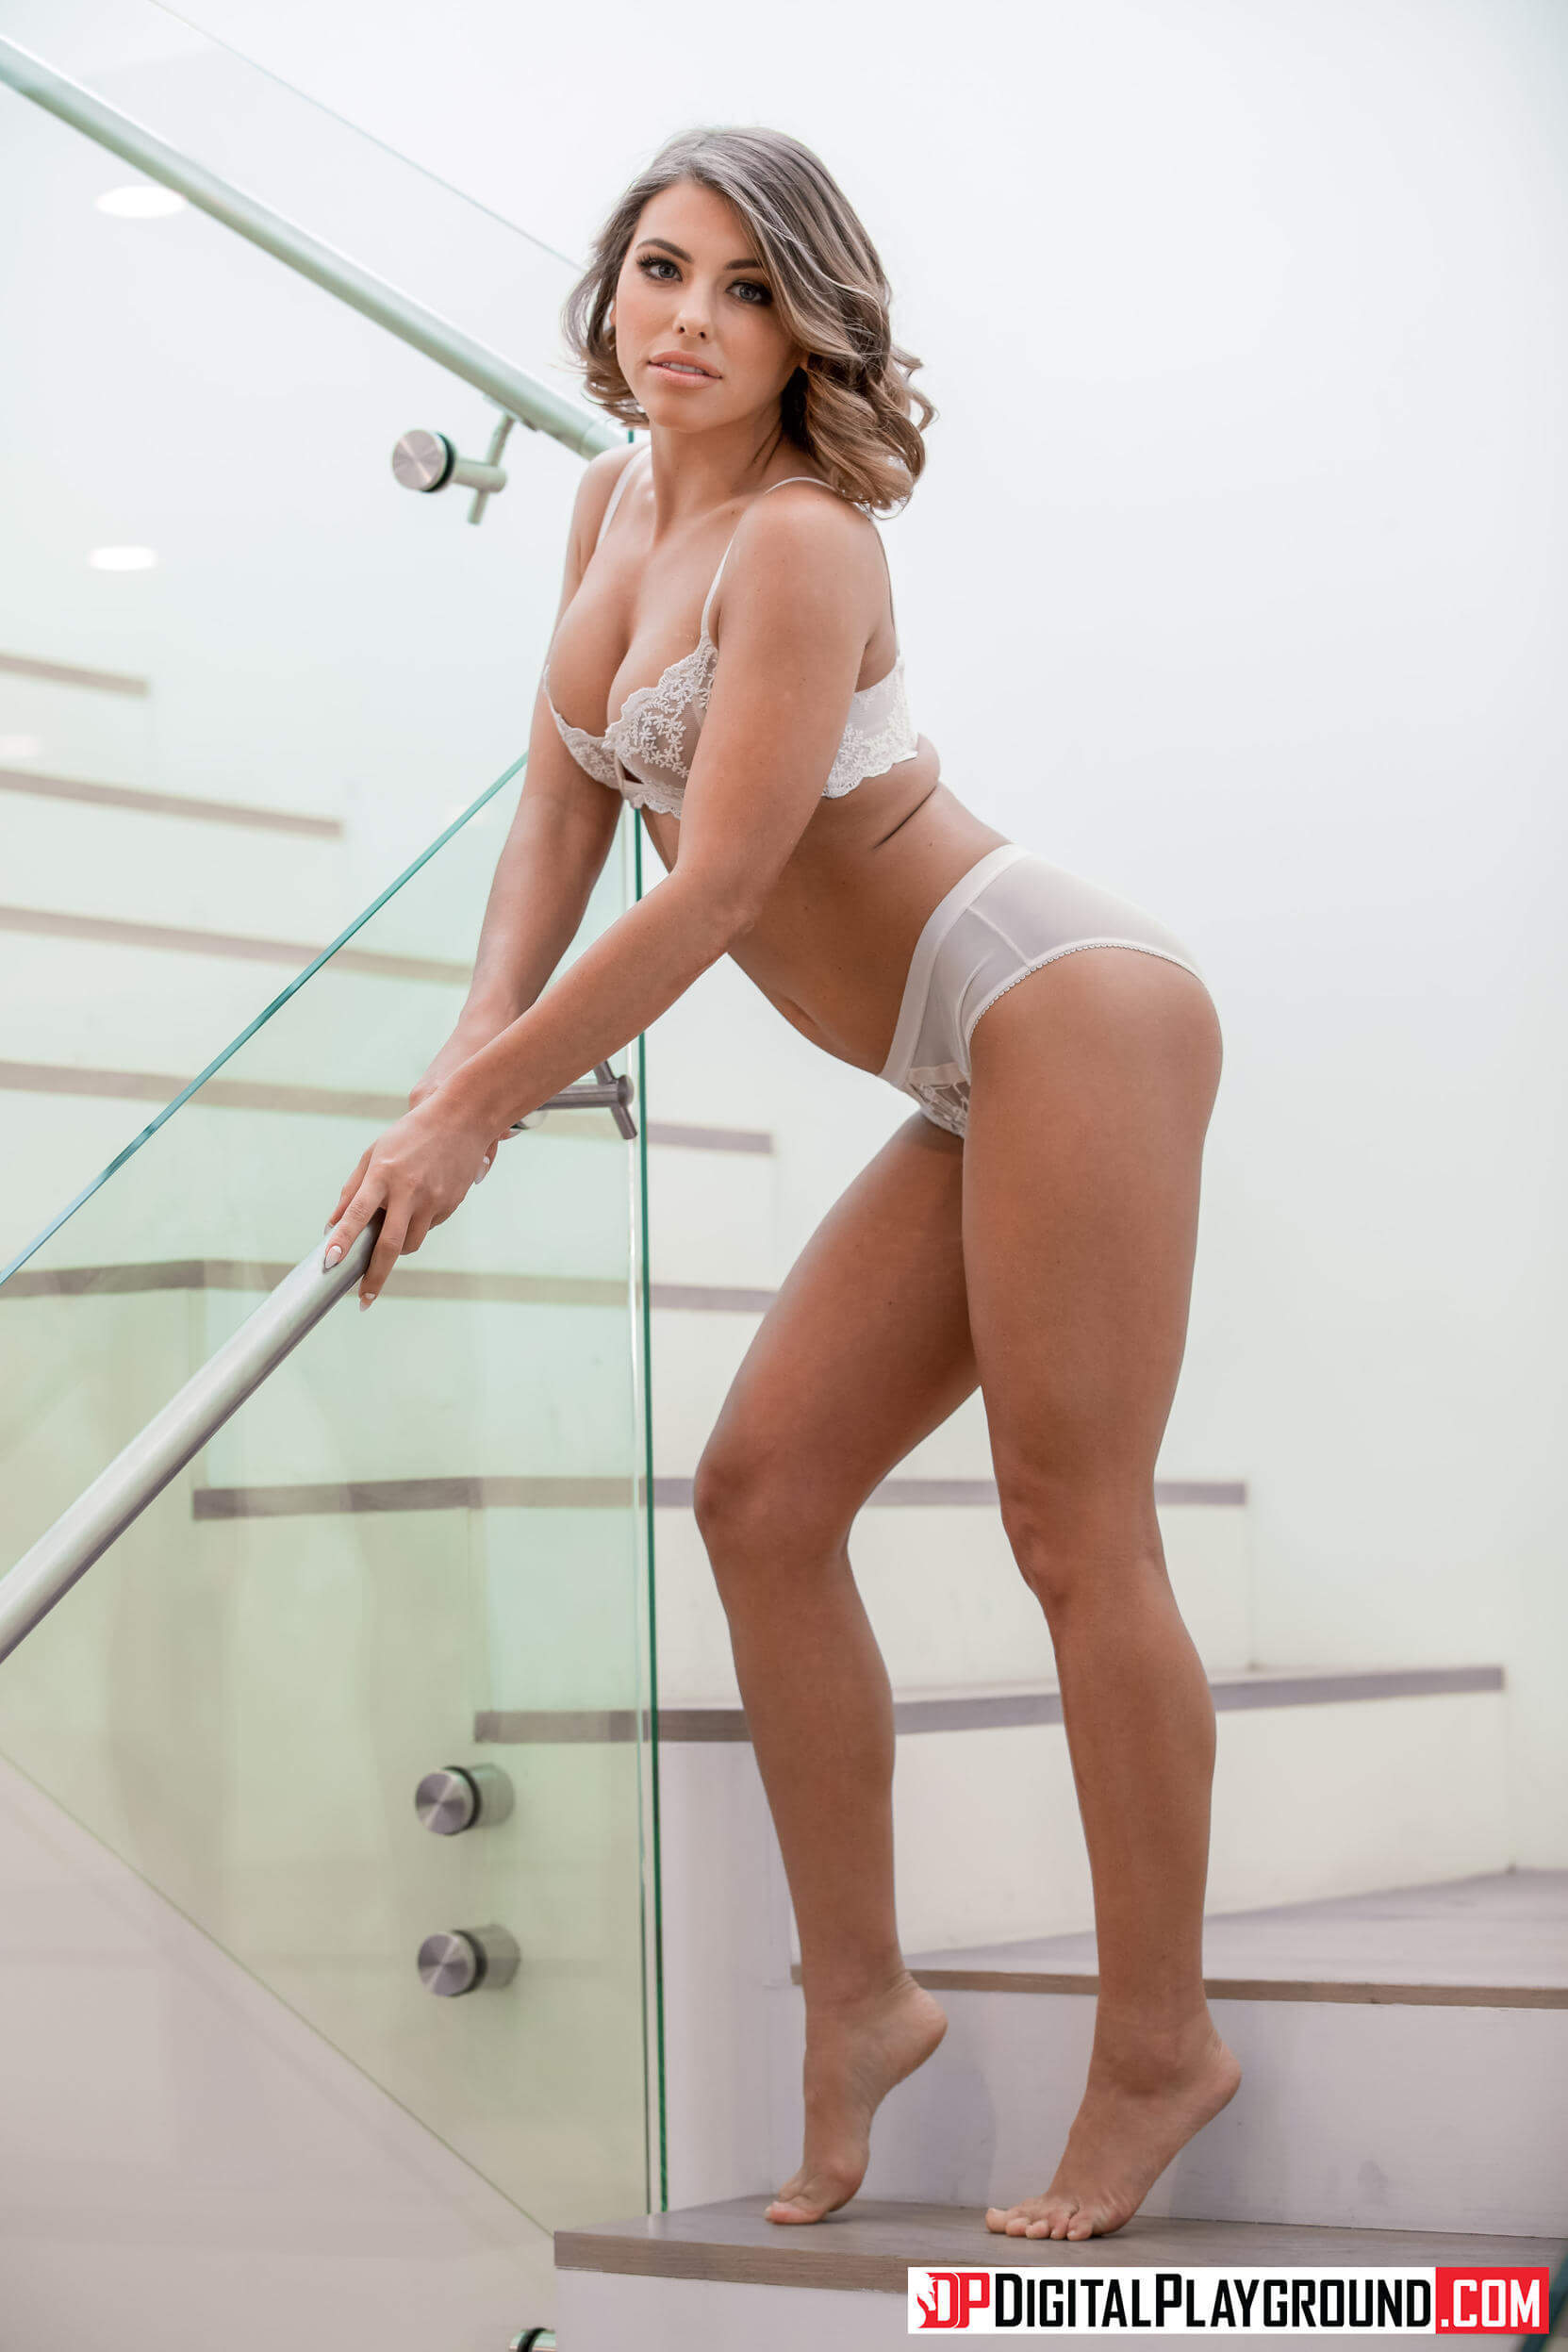 Adriana Chechik In The Ass Porn 49 hot pictures of adriana chechik will rock your world